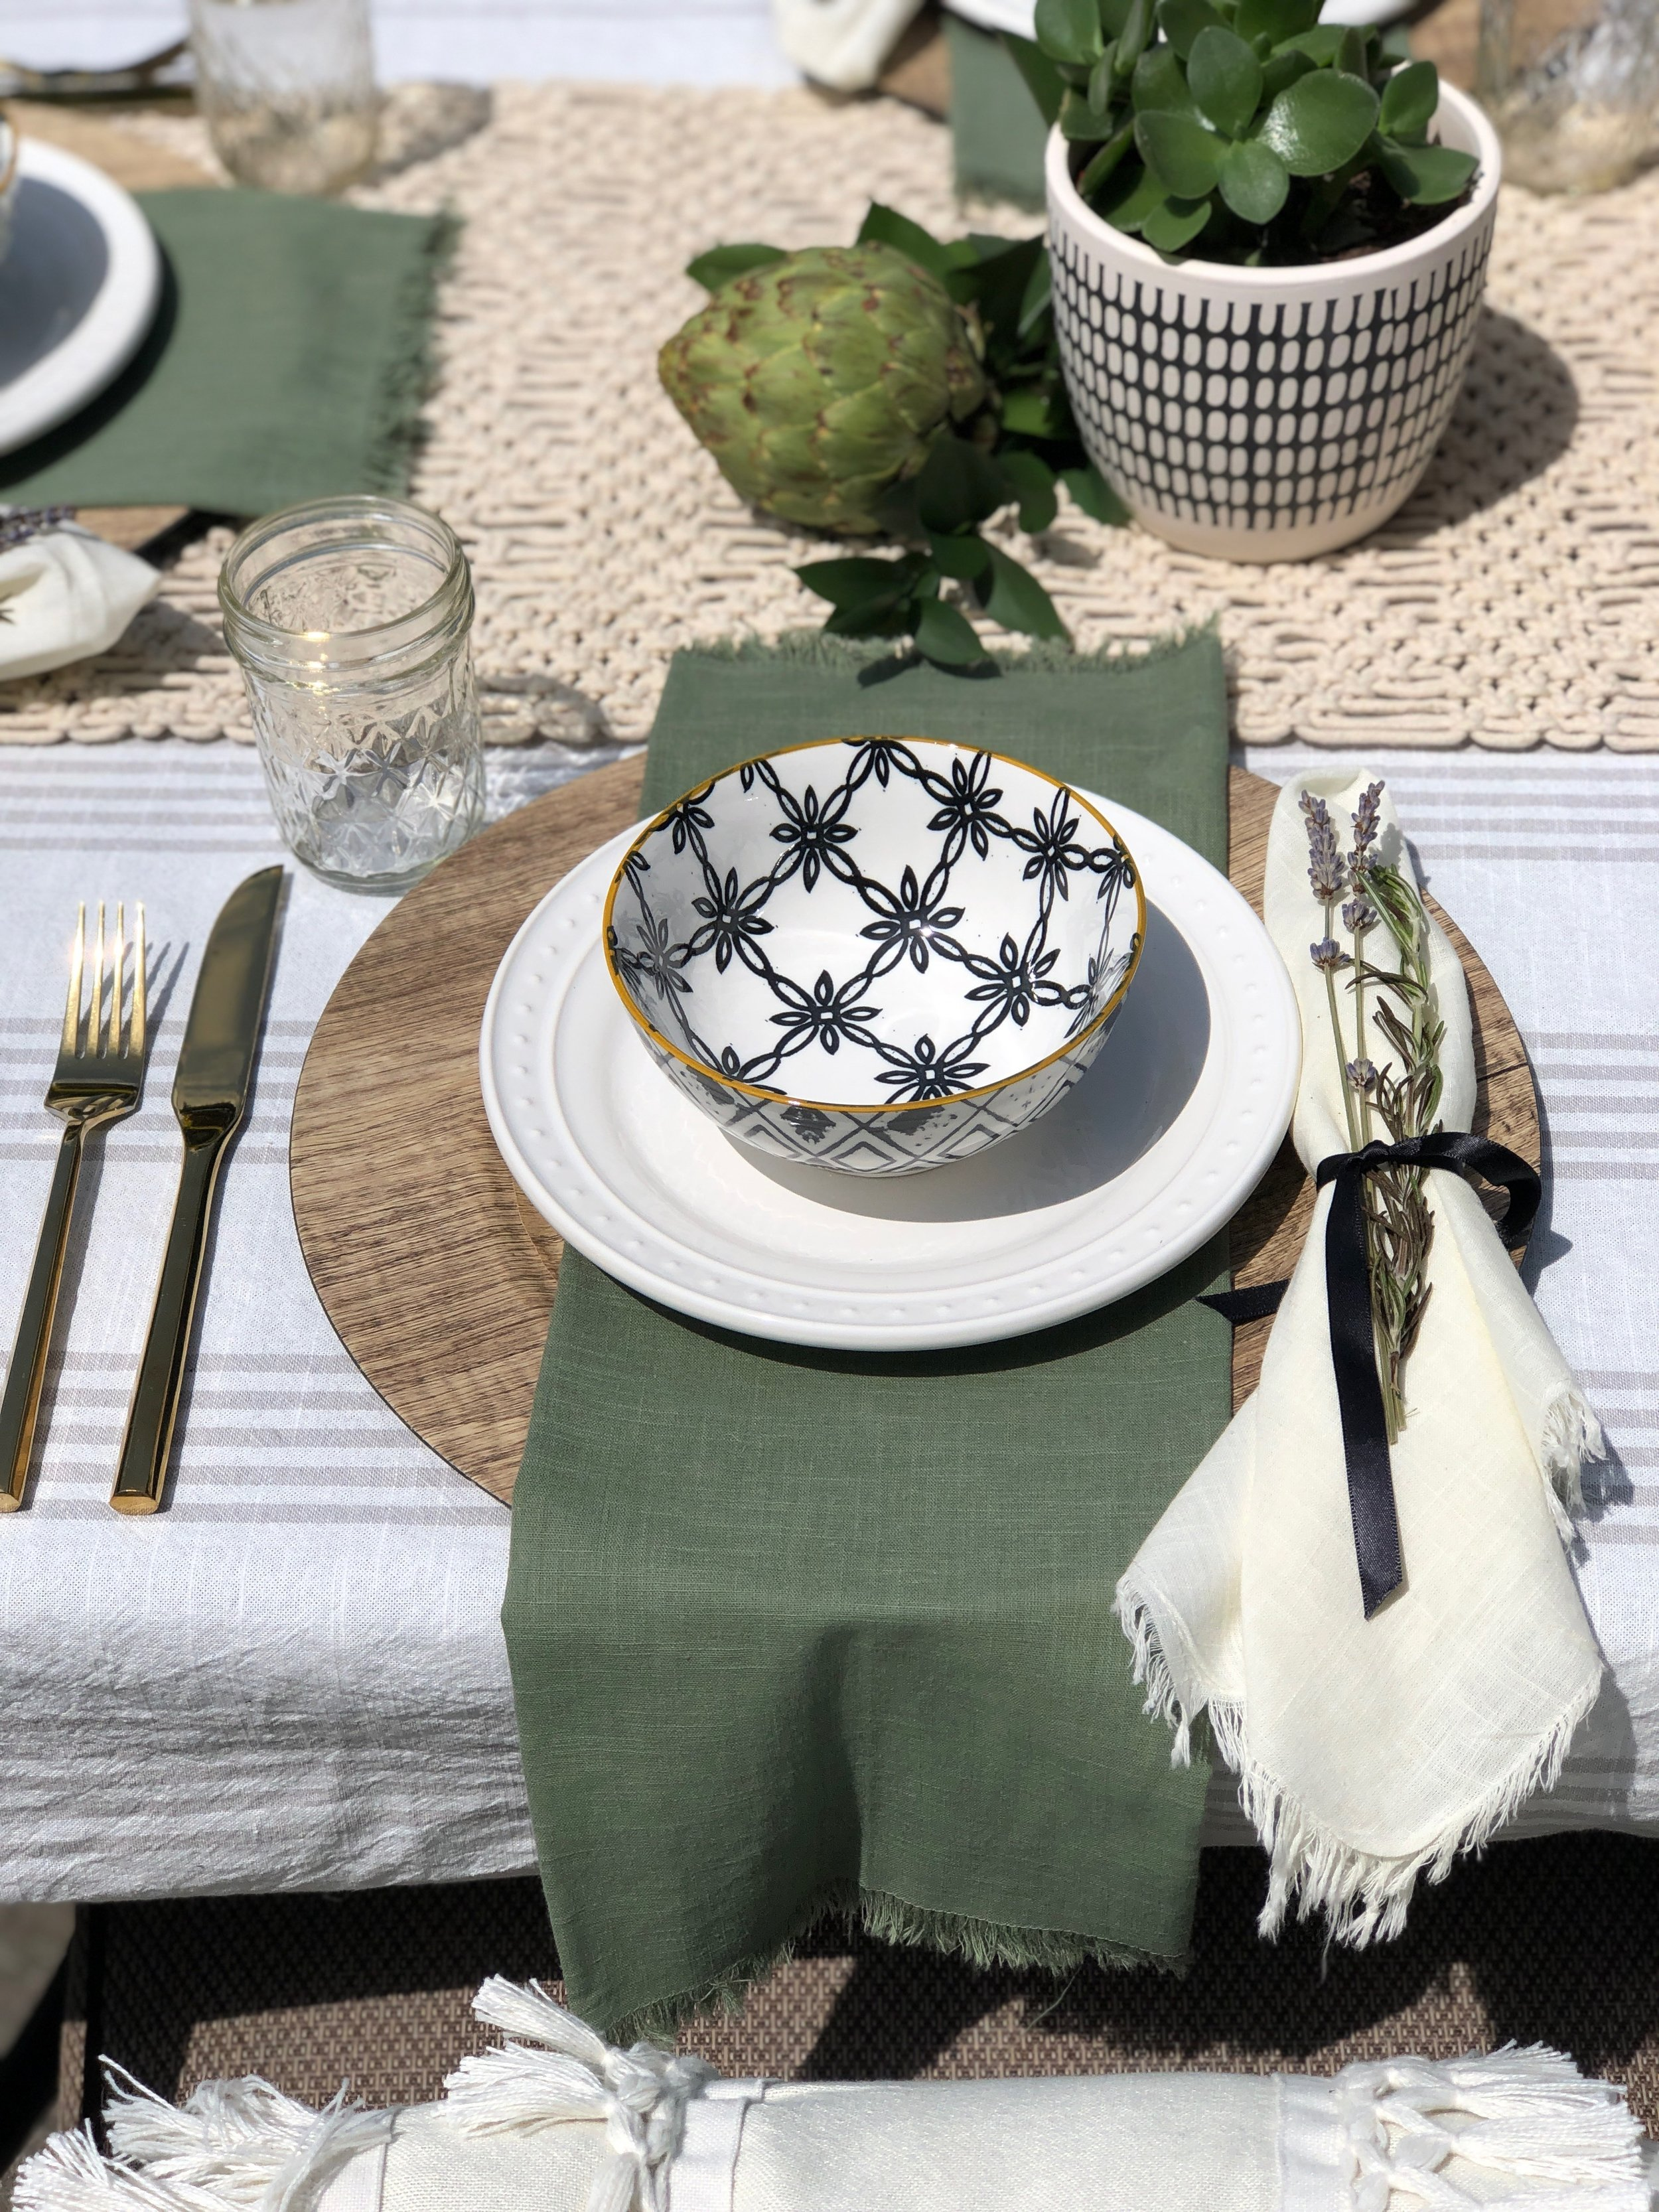 Mediterranean white, black, green and wood Tablescape by beam&bloom, World Market  White Plates ,  serving bowl ,  cloth napkins  and  macrame table runner . Target  flatware  and  tablecloth .  At Home  chargers and bowls. Photo Credit: Campbell Minister with Decorated Interiors